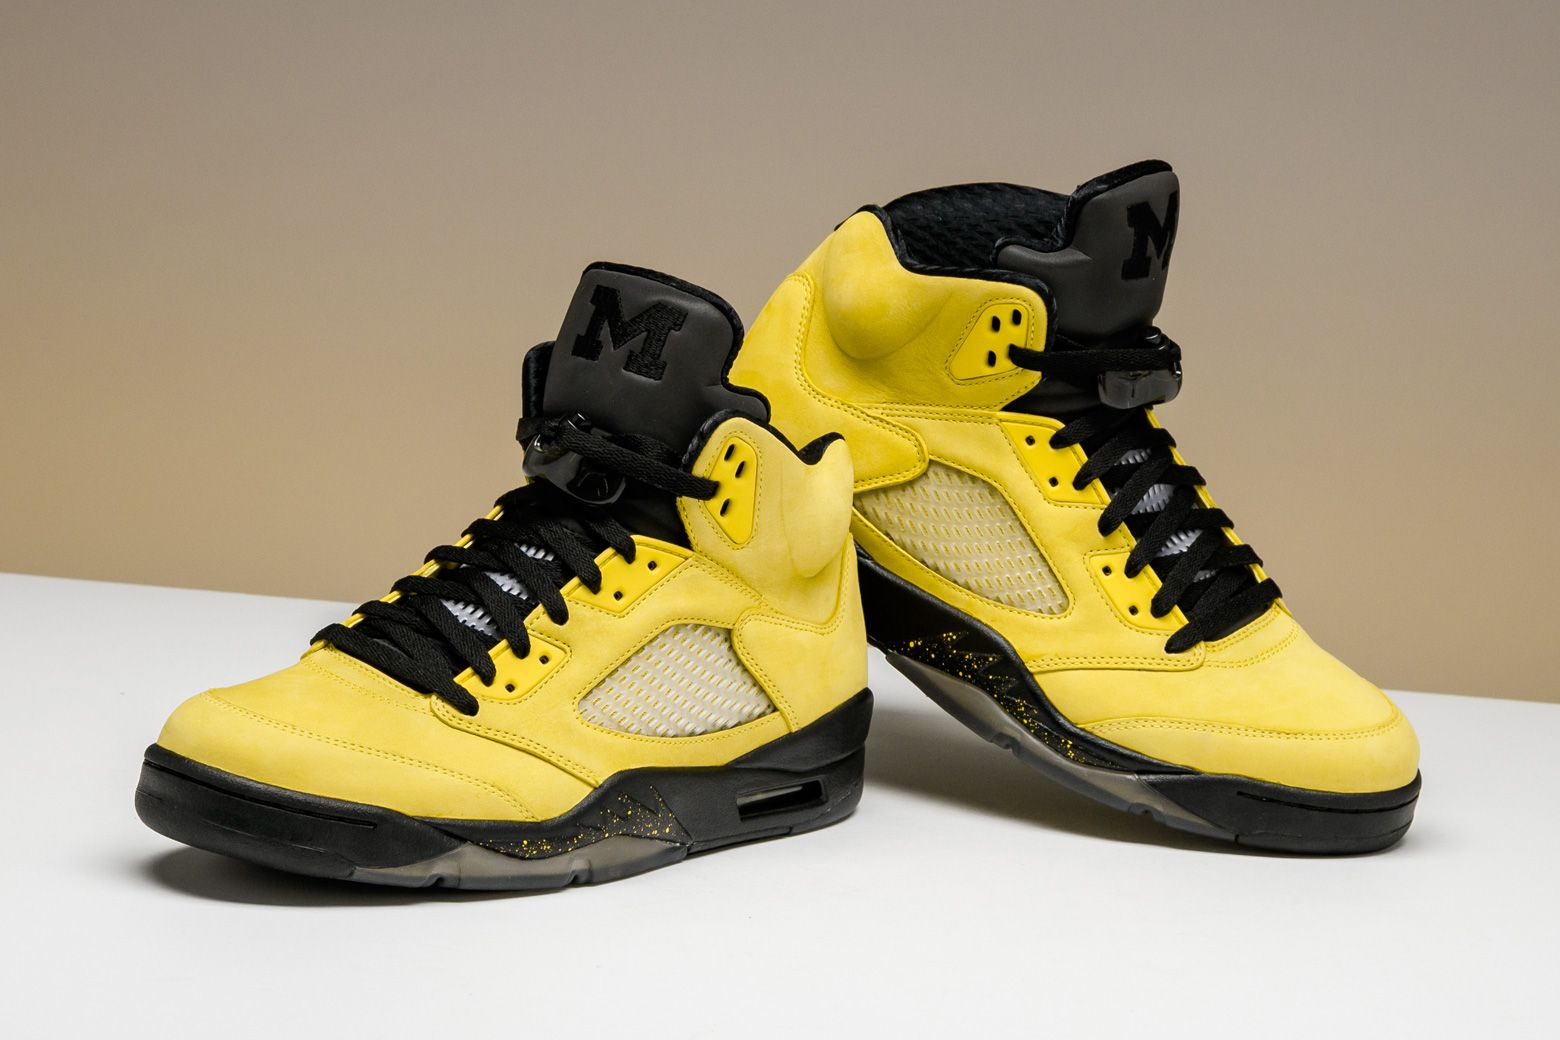 newest 6134b 00c2d Jordan Brand celebrates its partnership with University of Michigan with  this